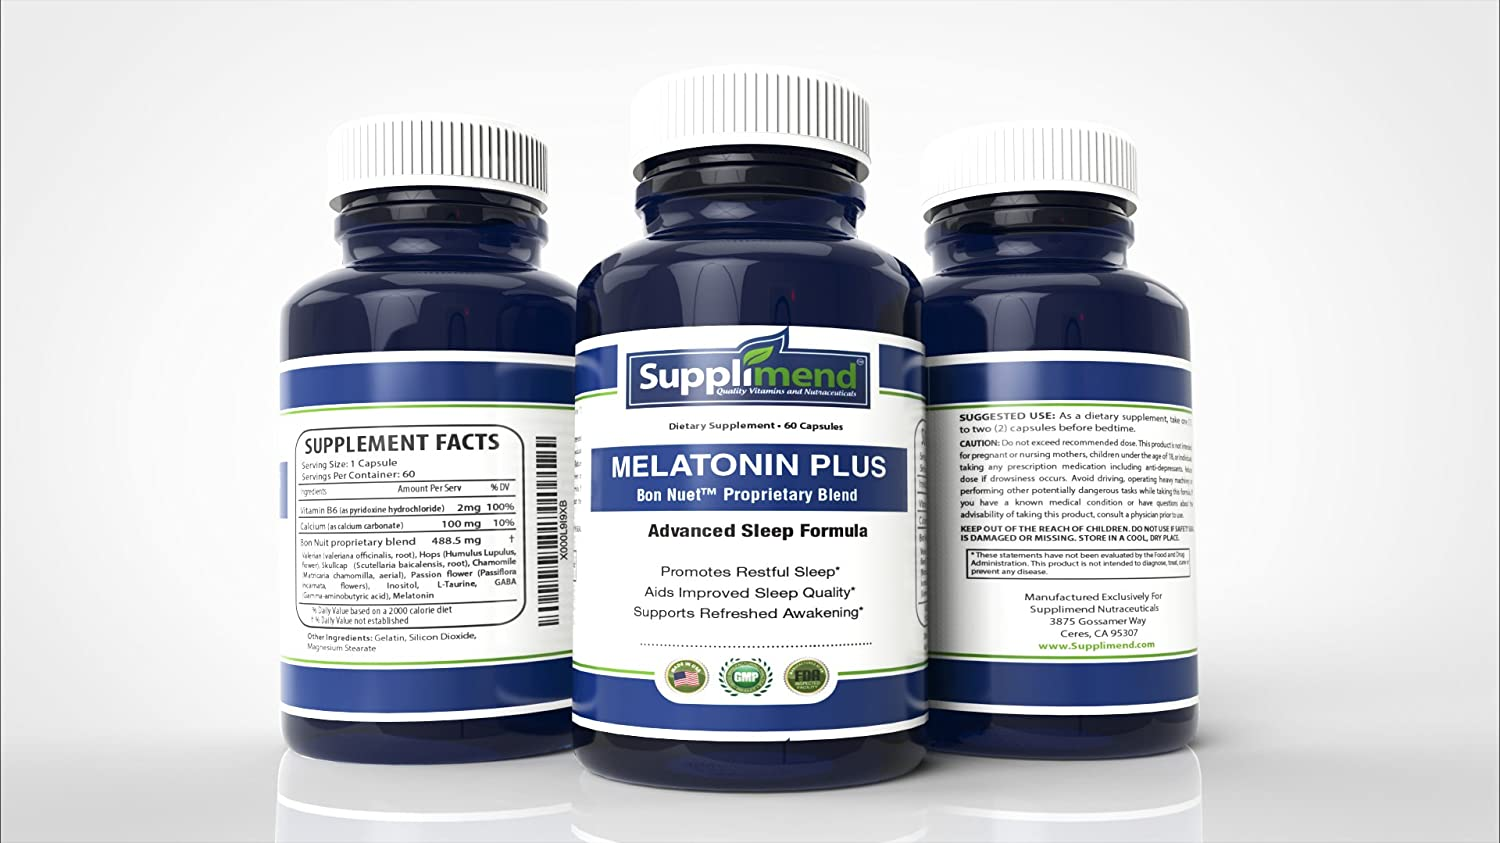 Amazon.com: SUPPLIMEND Melatonin Plus Sleep Aid | 12 All-Natural Sleep Ingredients | Includes Melatonin 3mg, Valerian Root, GABA, Skullcap, Chamomile, ...